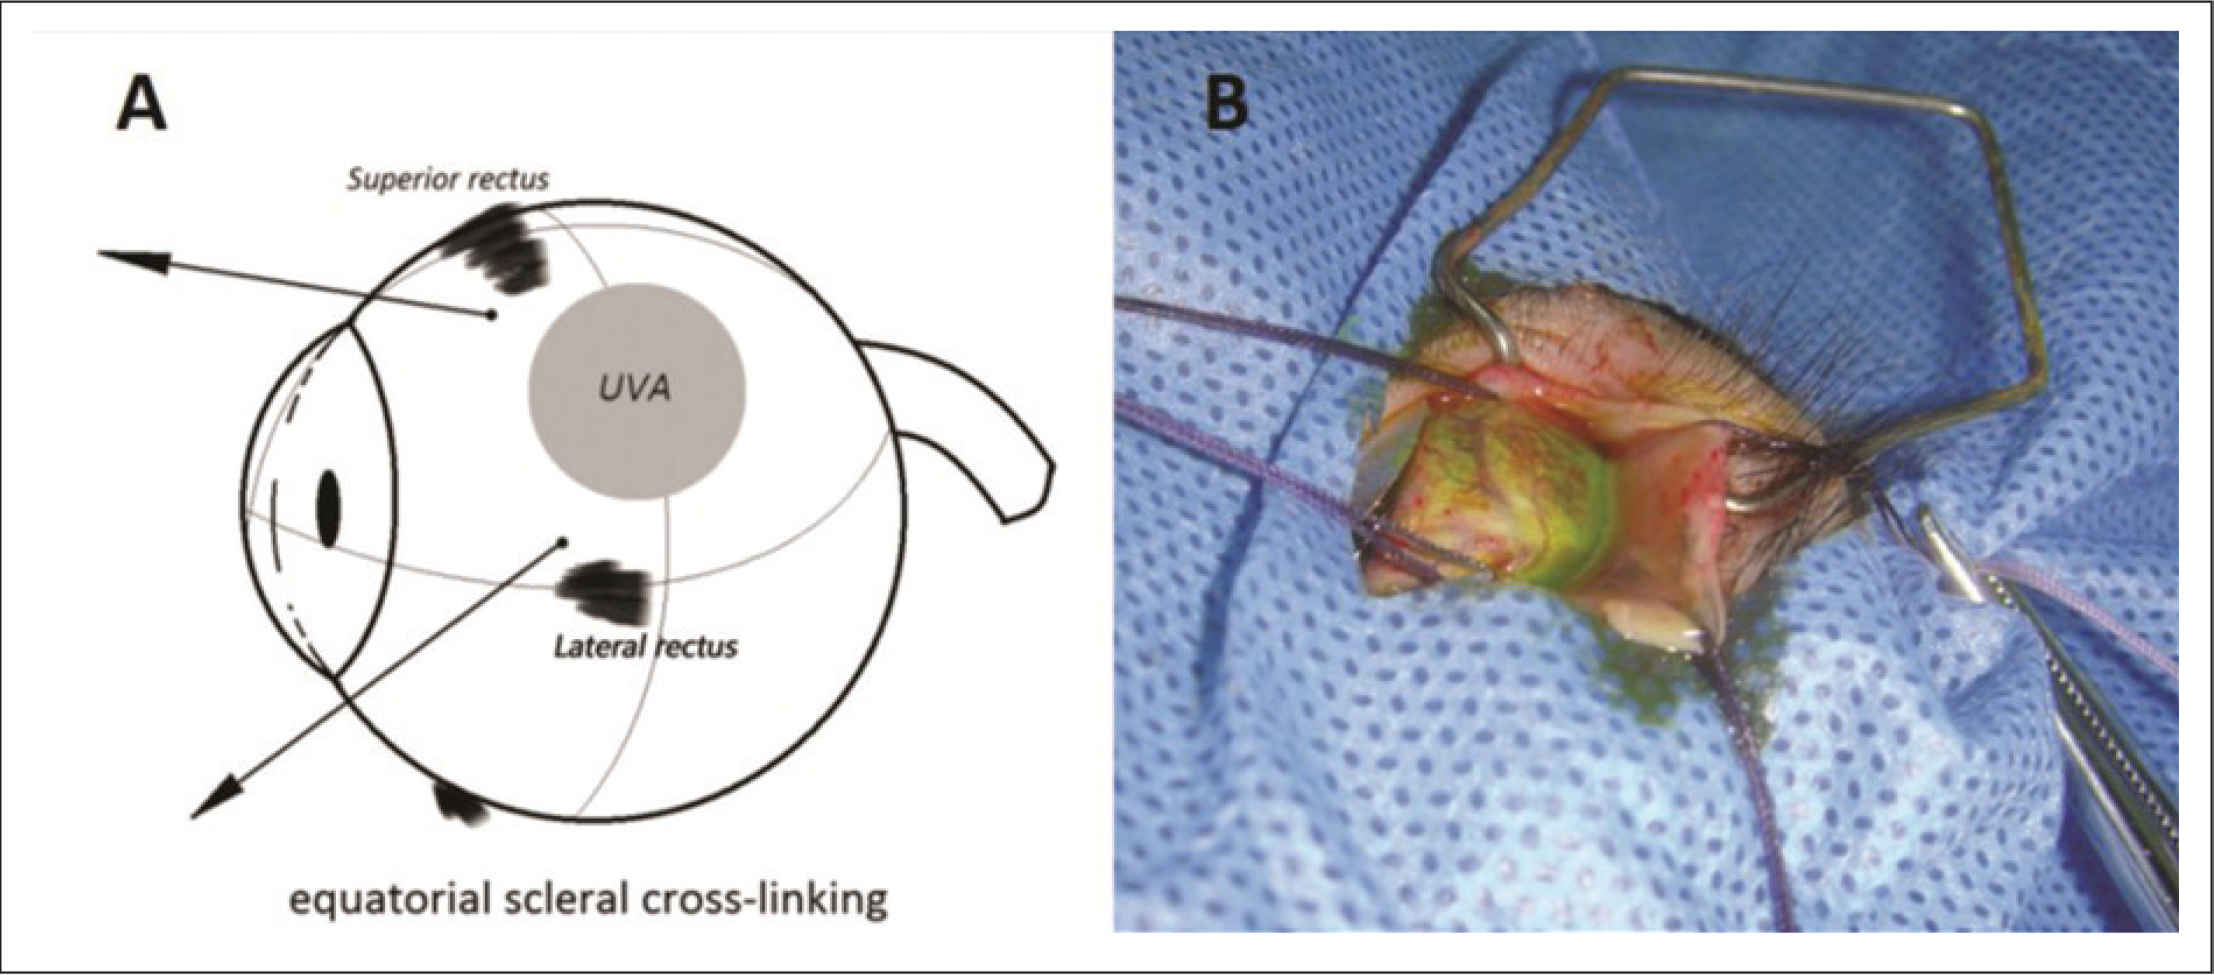 (A) Diagram of a rhesus monkey eyeball showing the scleral corneal cross-linking locations. (B) The eye was fixed and manipulated by sutures to protrude the eye and the cornea was covered by a piece of tinfoil to avoid irradiation. UVA = ultraviolet-A light